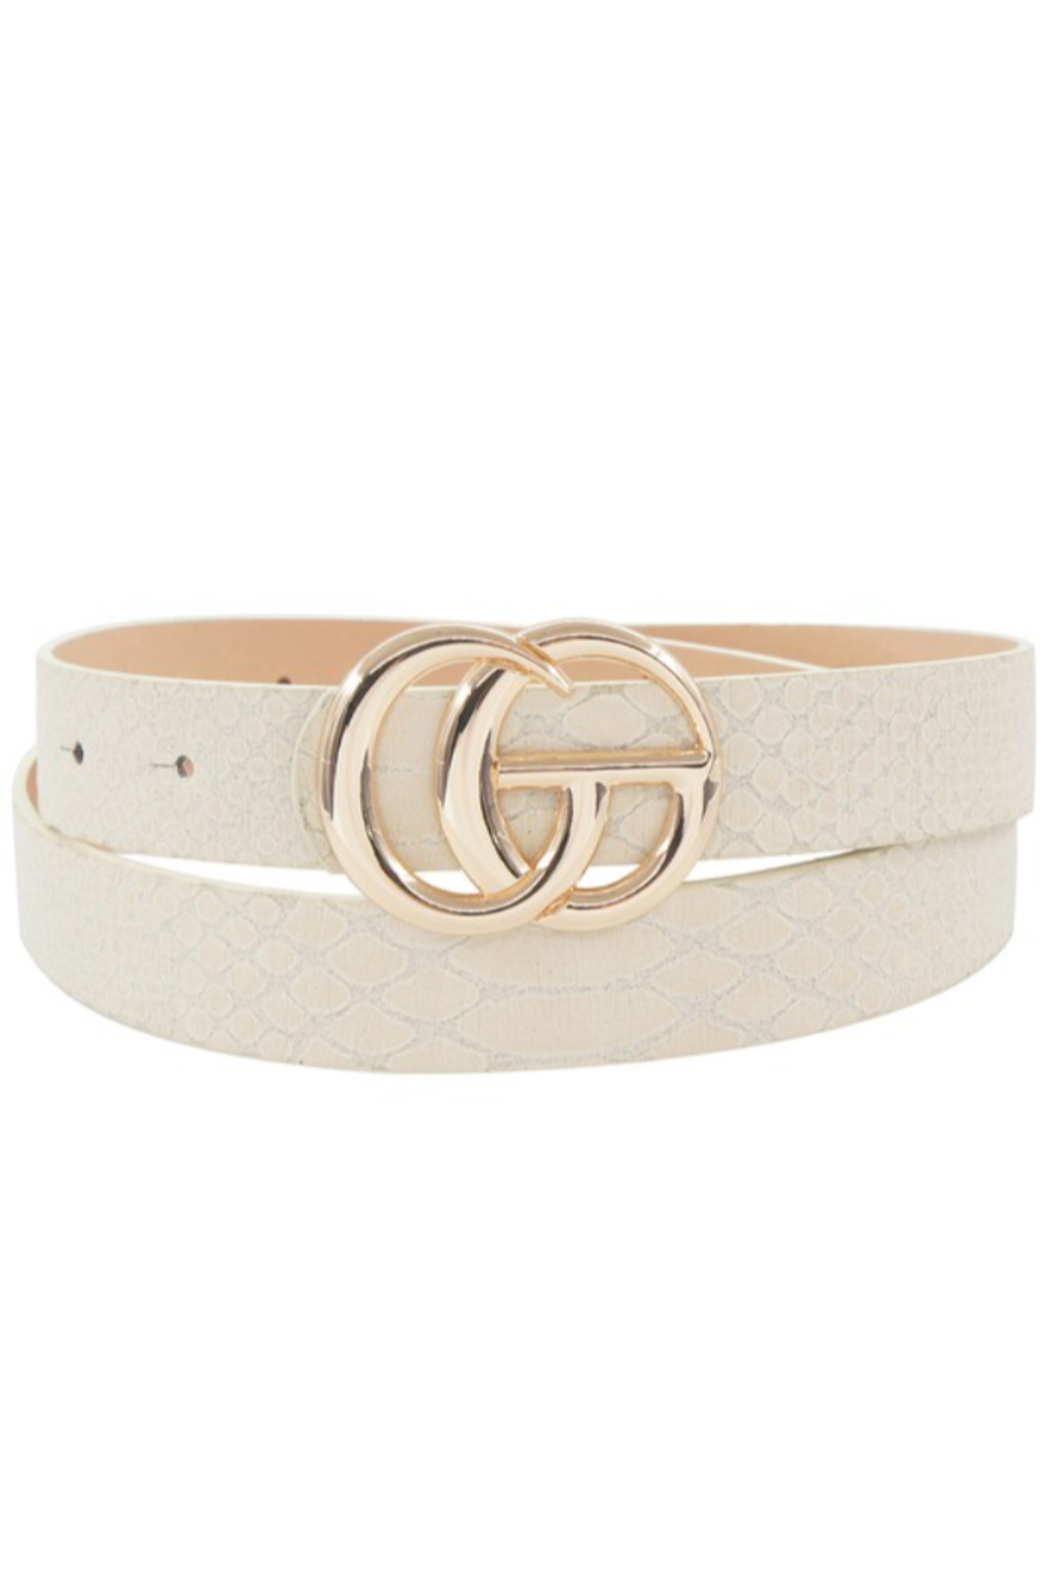 Ana Accessories Snake GG Belt - Front Cropped Image